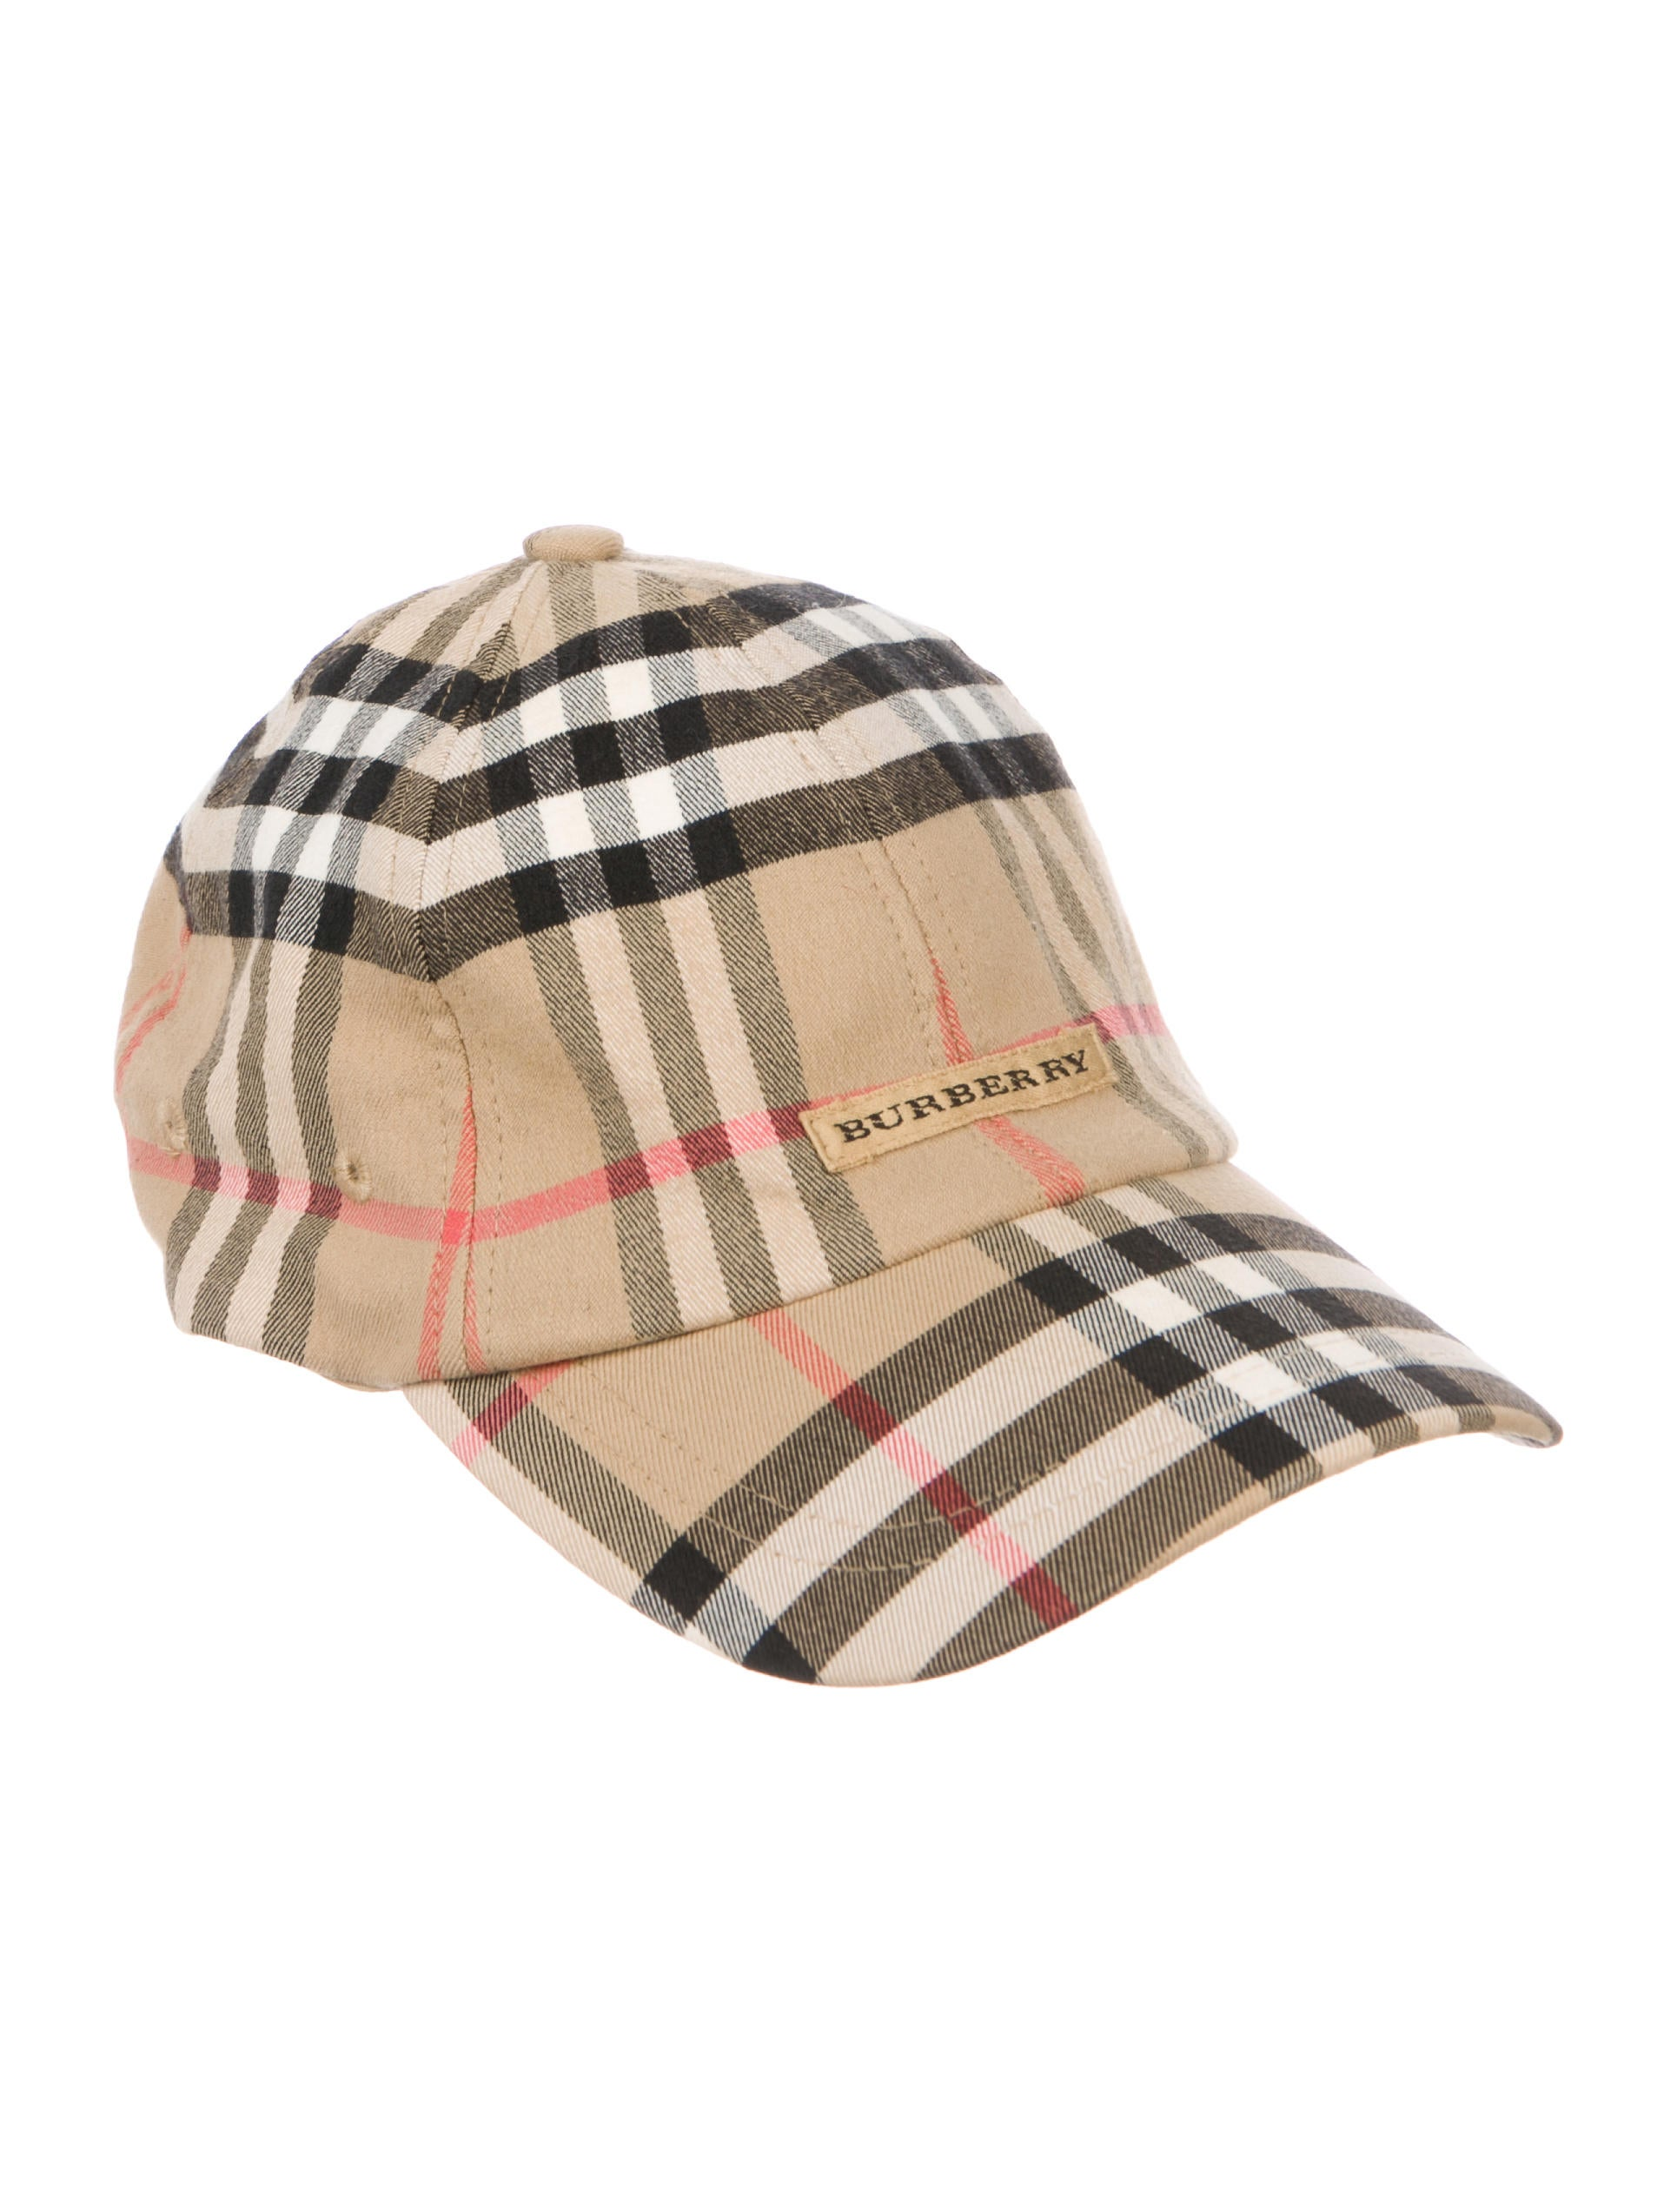 Burberry Golf Nova Check Cap - Accessories - WBRBG20131  9e73450dac9